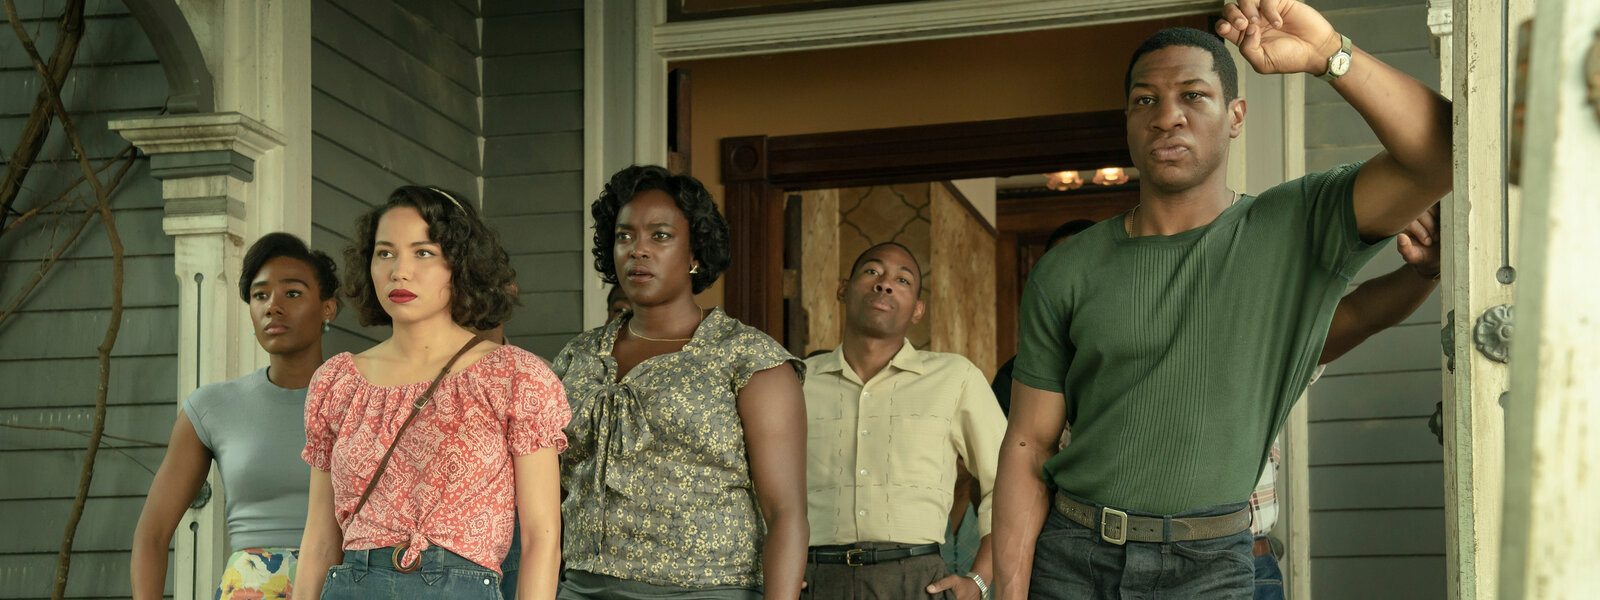 """See Jonathan Majors as Atticus 'Tic' Freeman in """"Lovecraft Country"""" on HBO Max"""